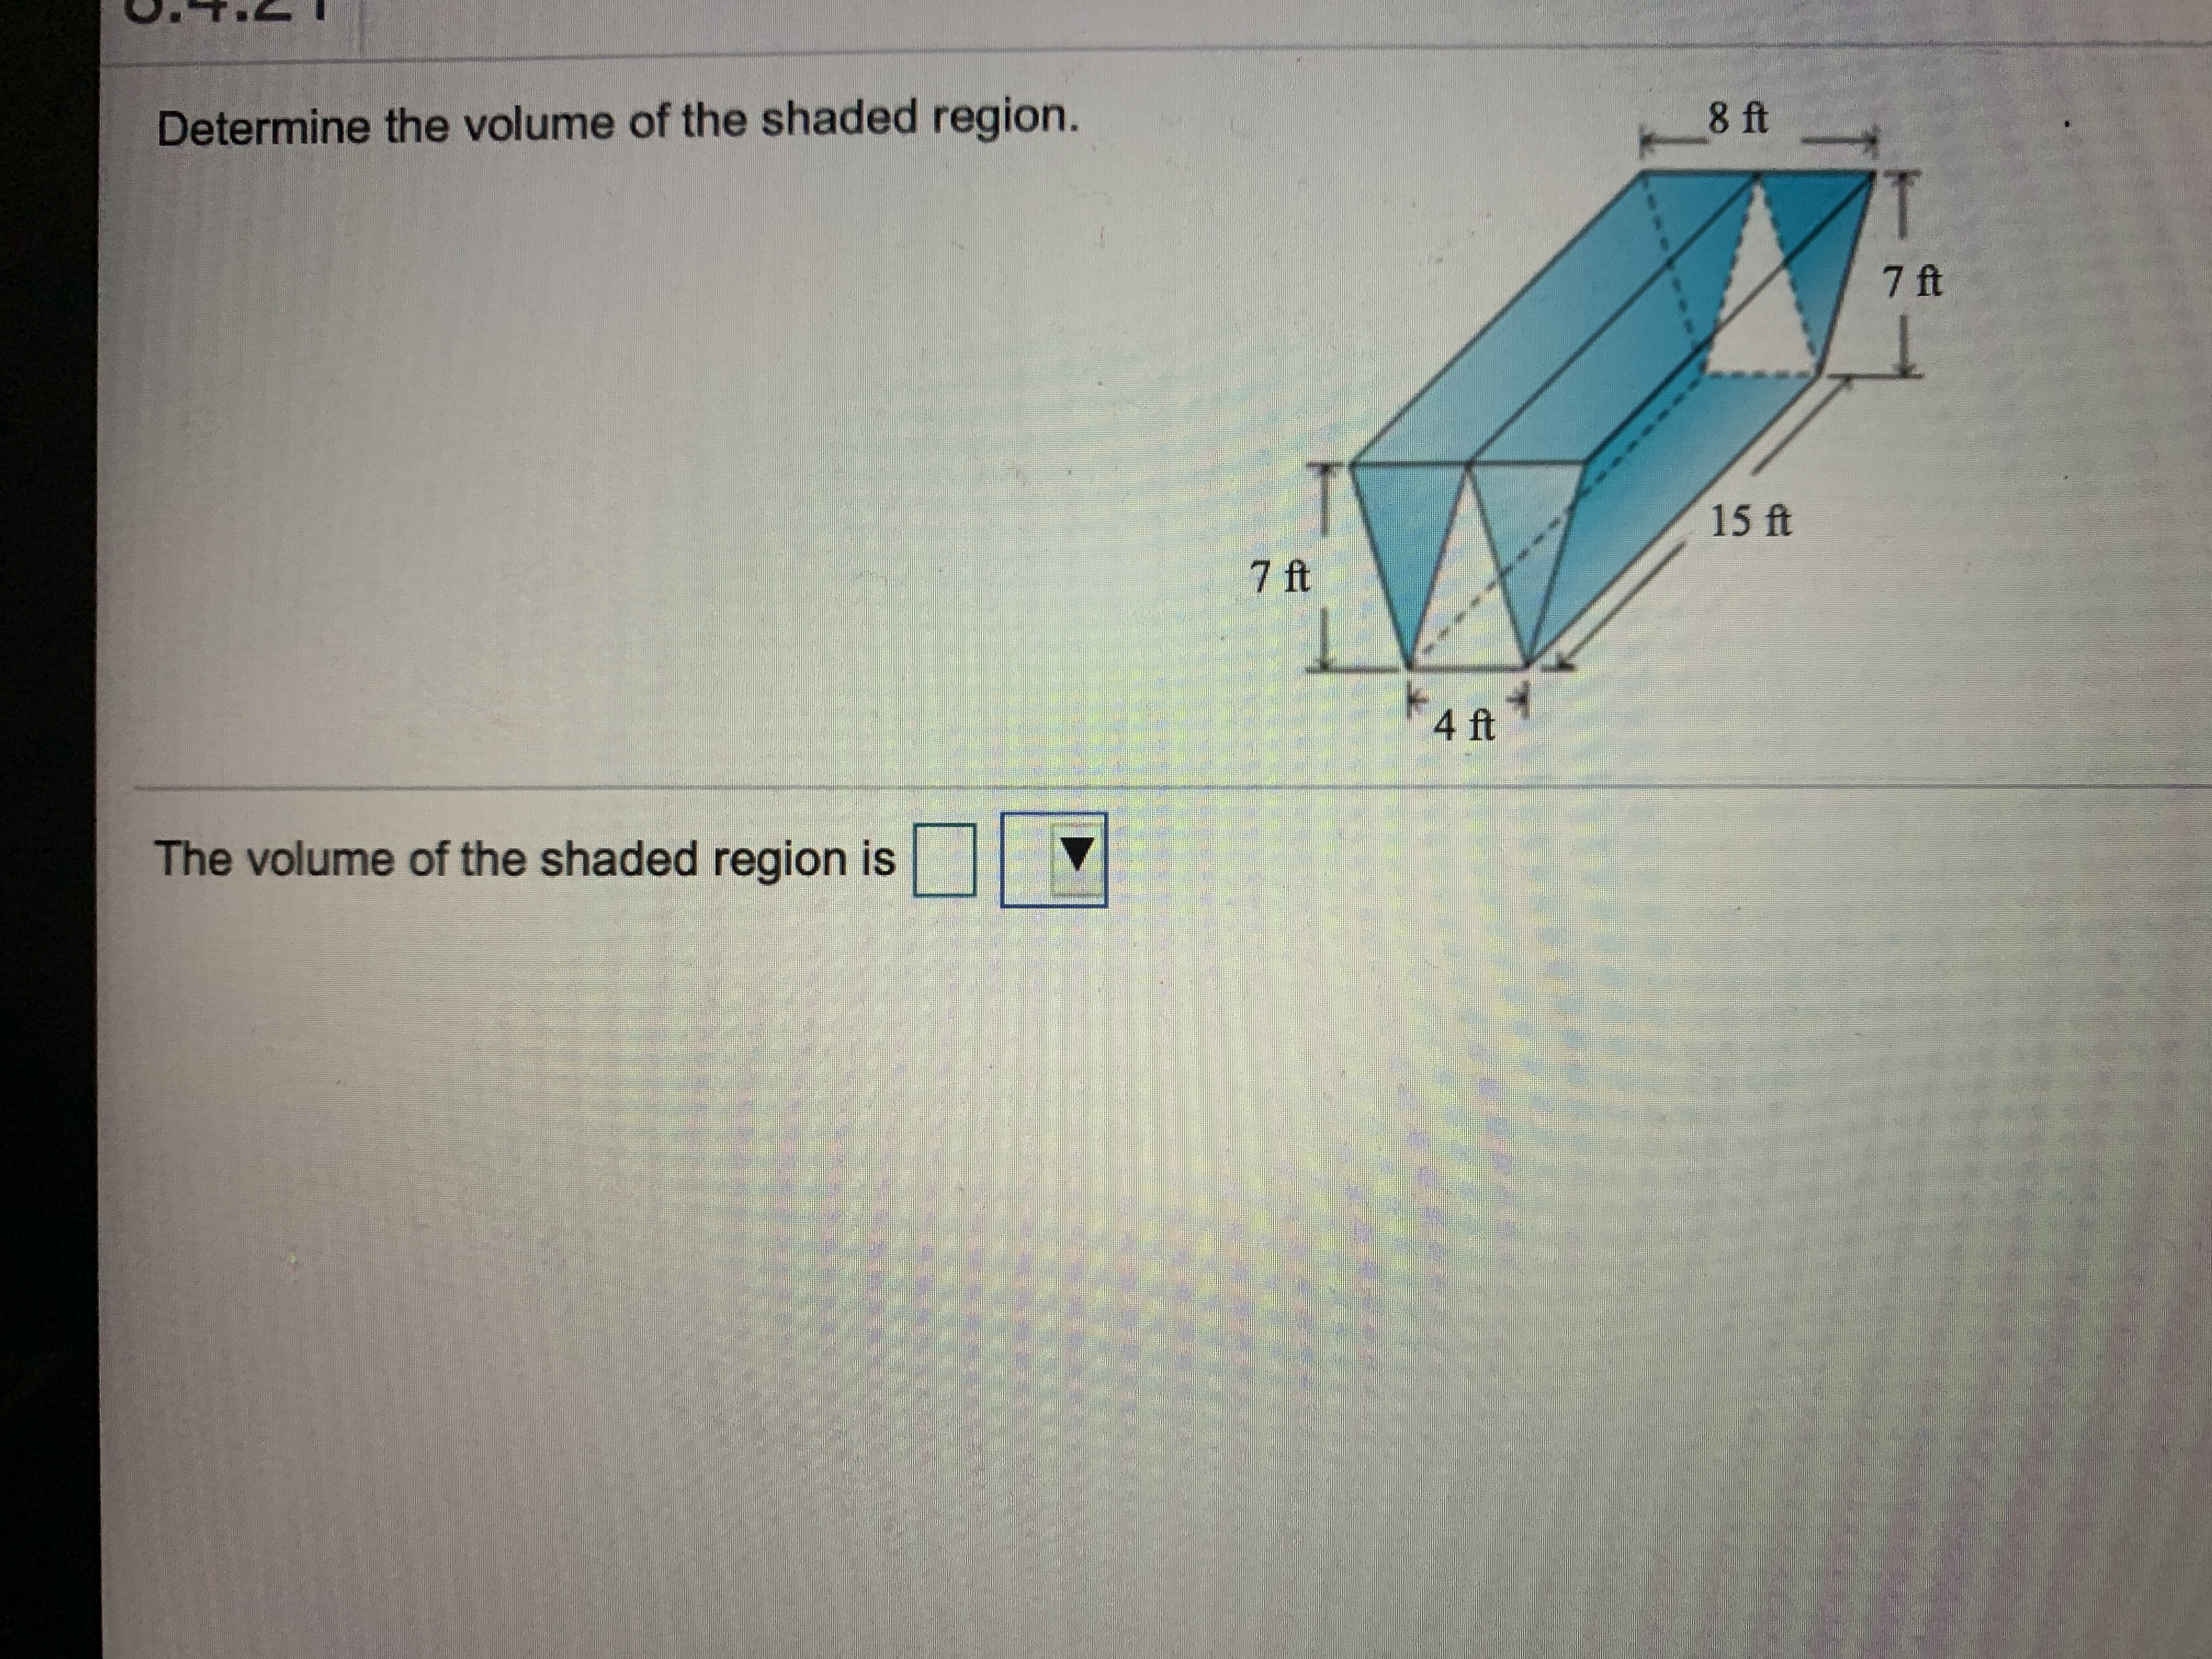 Answered 8 Ft Determine The Volume Of The Shaded